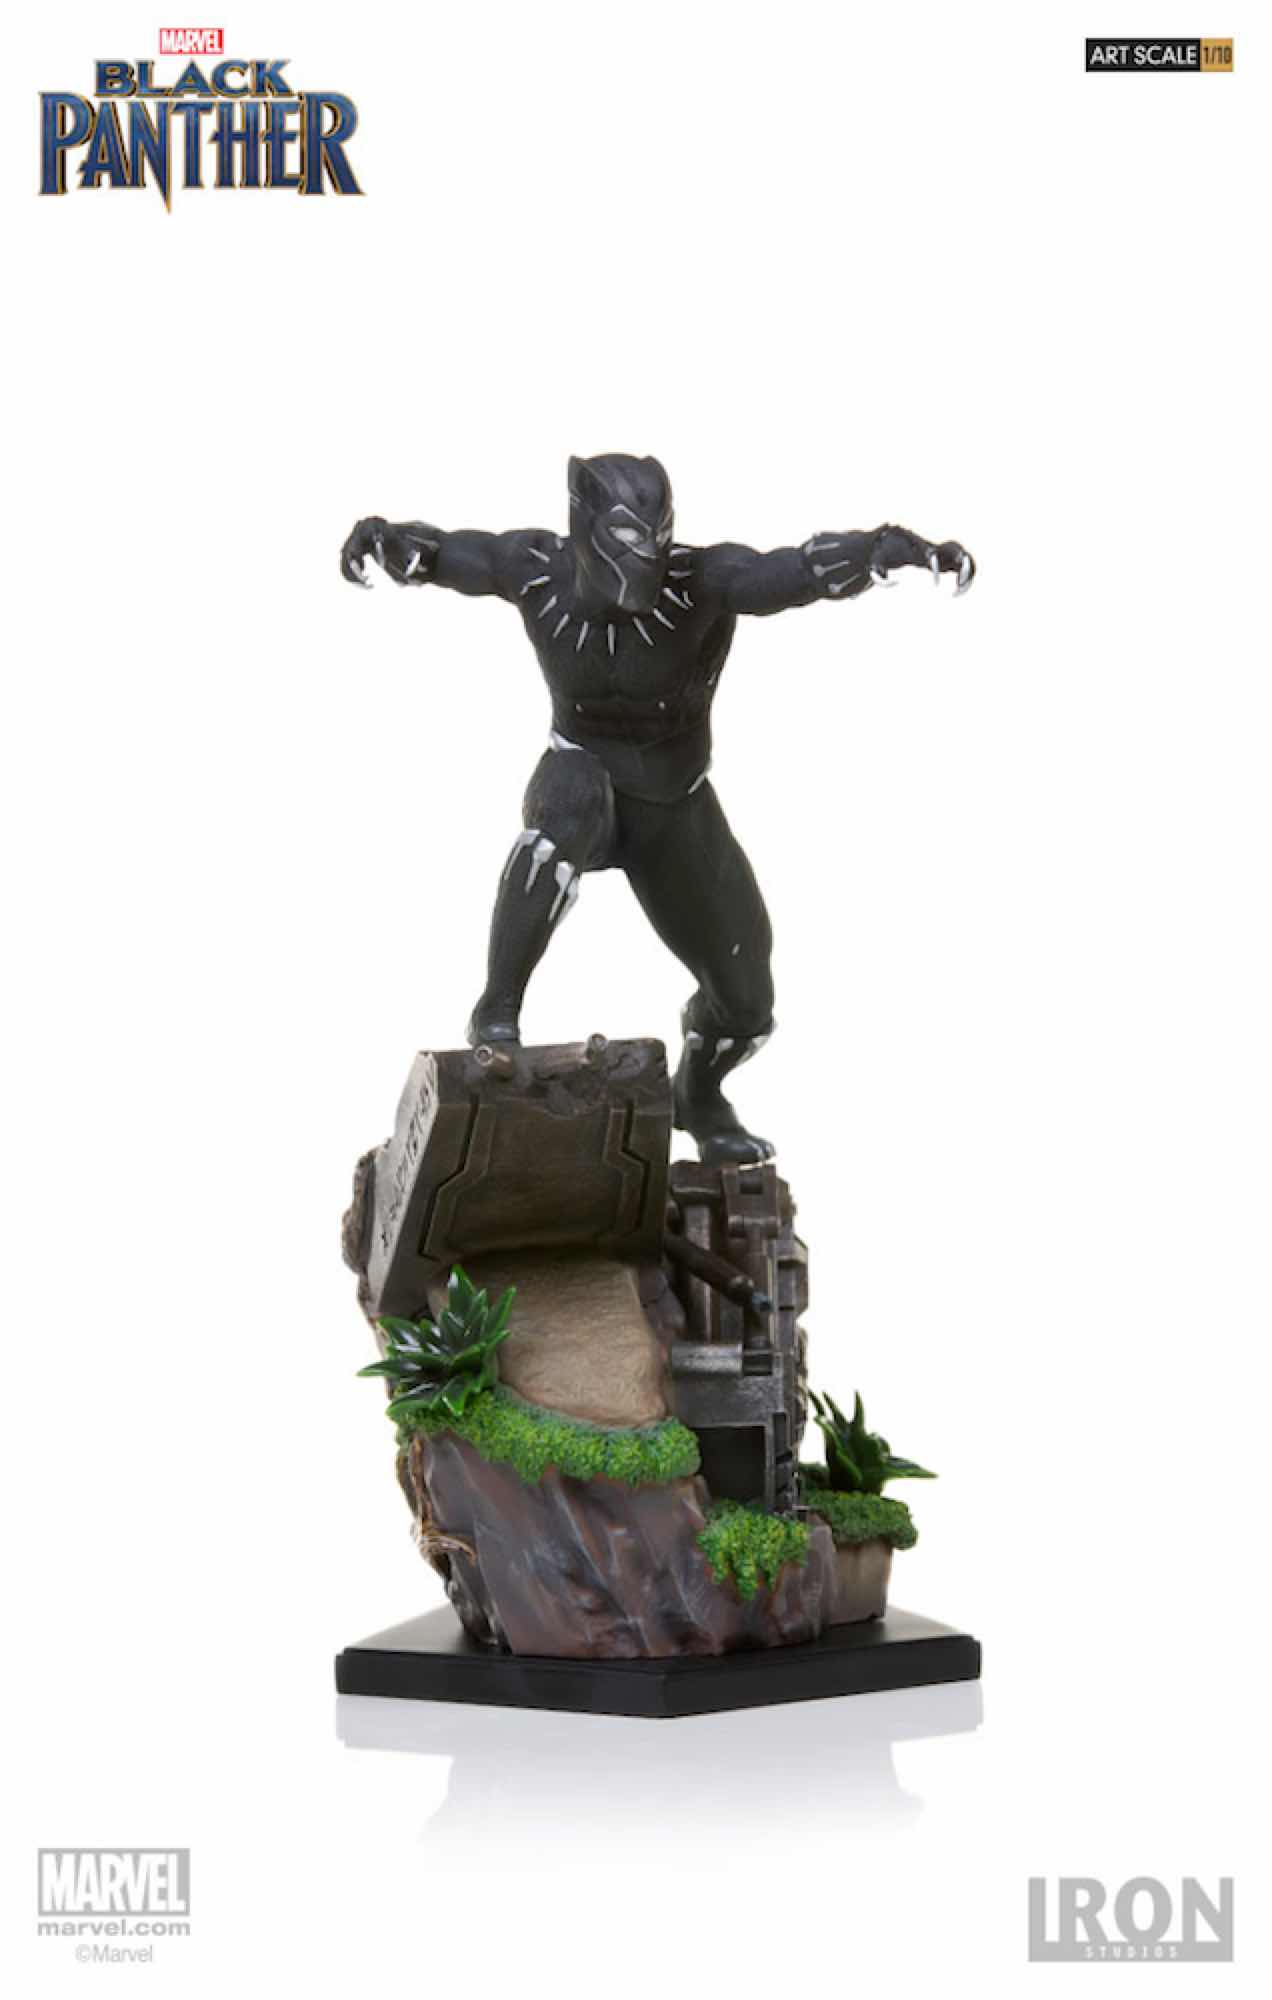 BLACK PANTHER FIG 26 CM BLACK PANTHER IRON STUDIOS BDS 1/10 ART SCALE